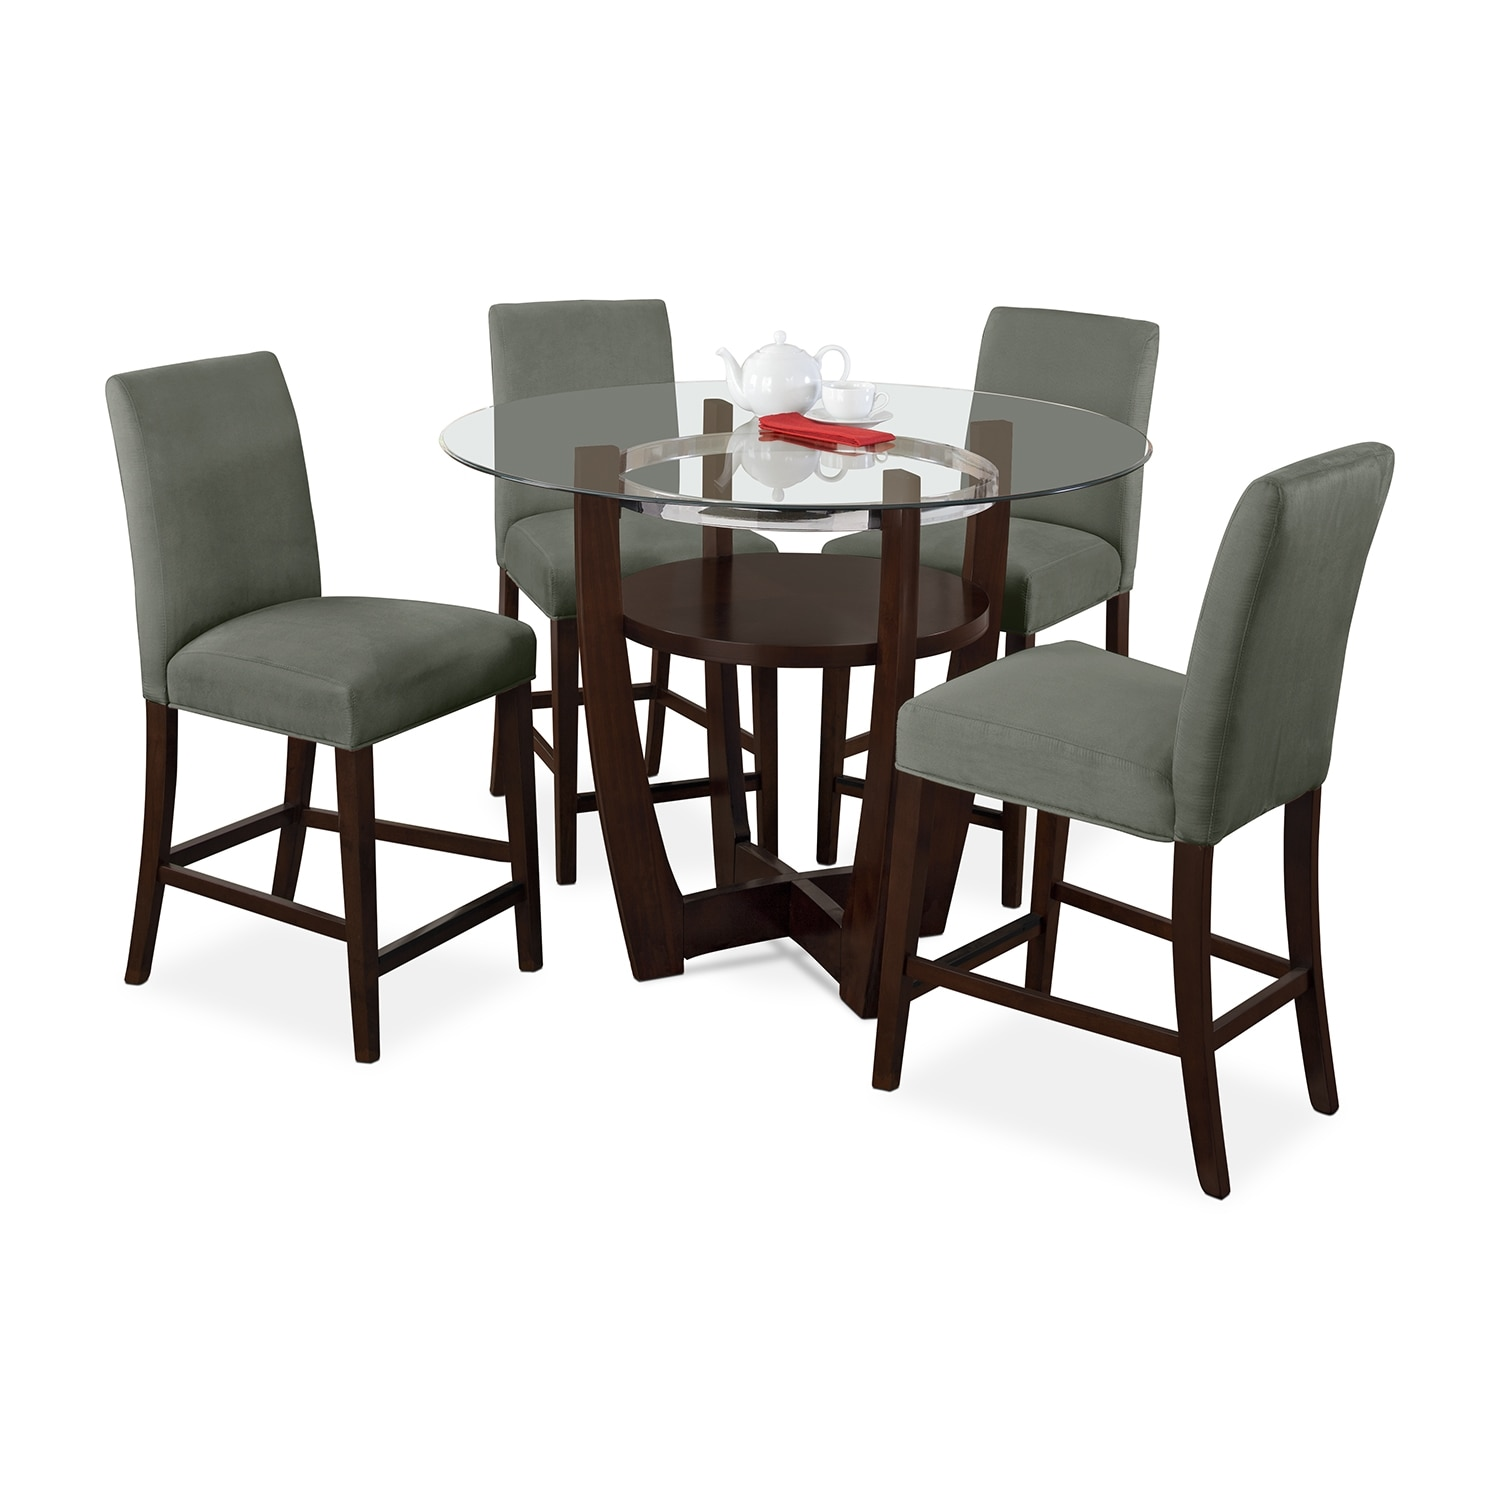 Dining Room Furniture - Alcove Counter-Height Dinette with Four Side Chairs - Sage